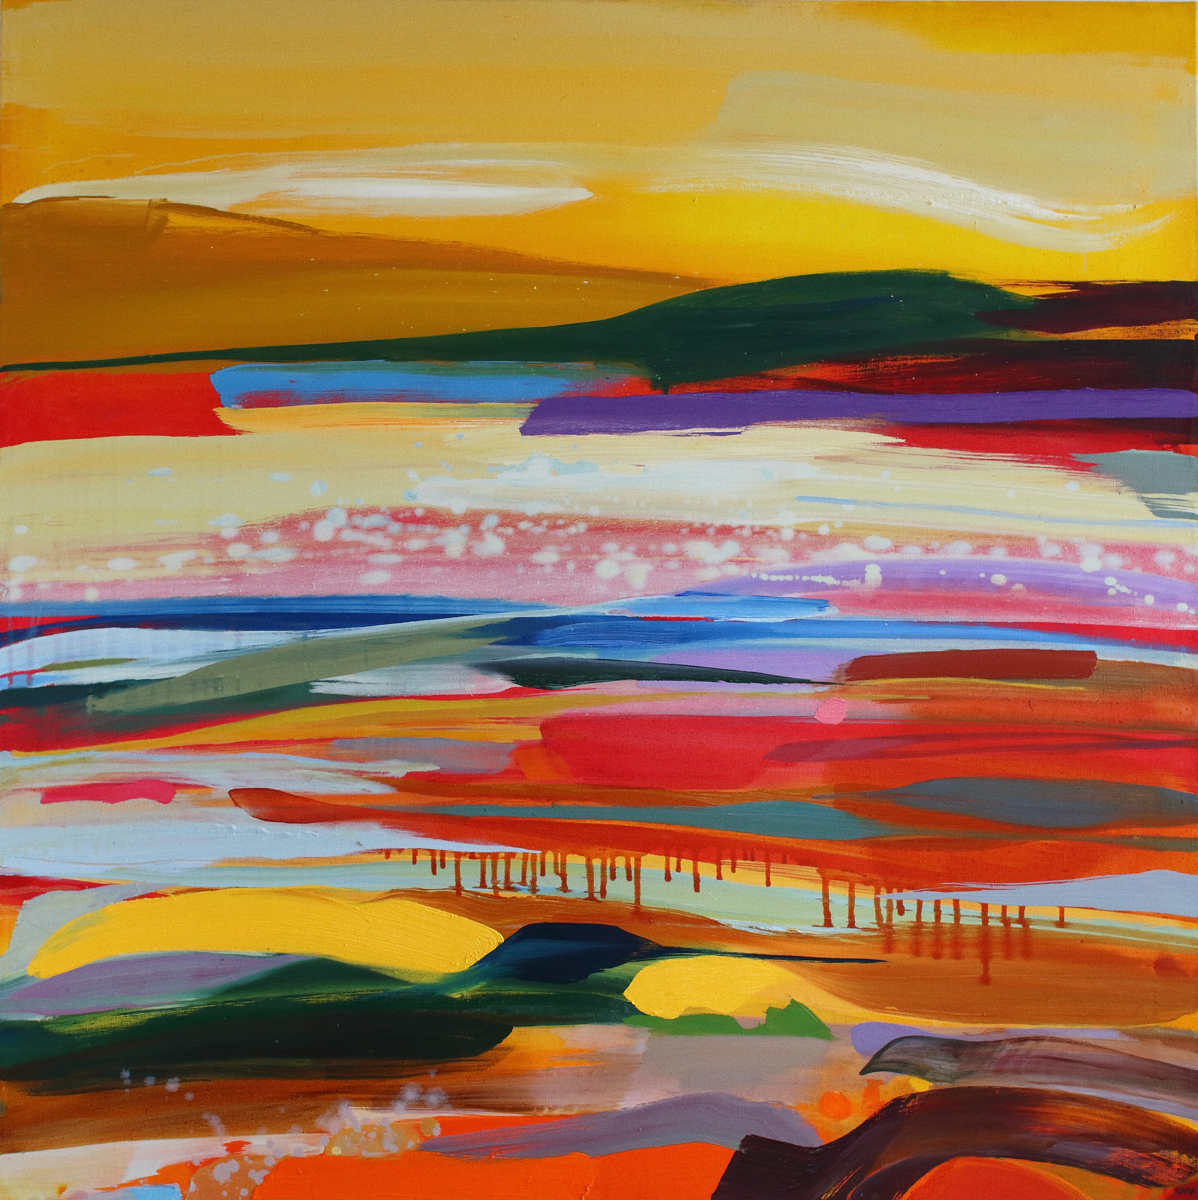 Landscape painting titled A Wider Sky by Shona Barr